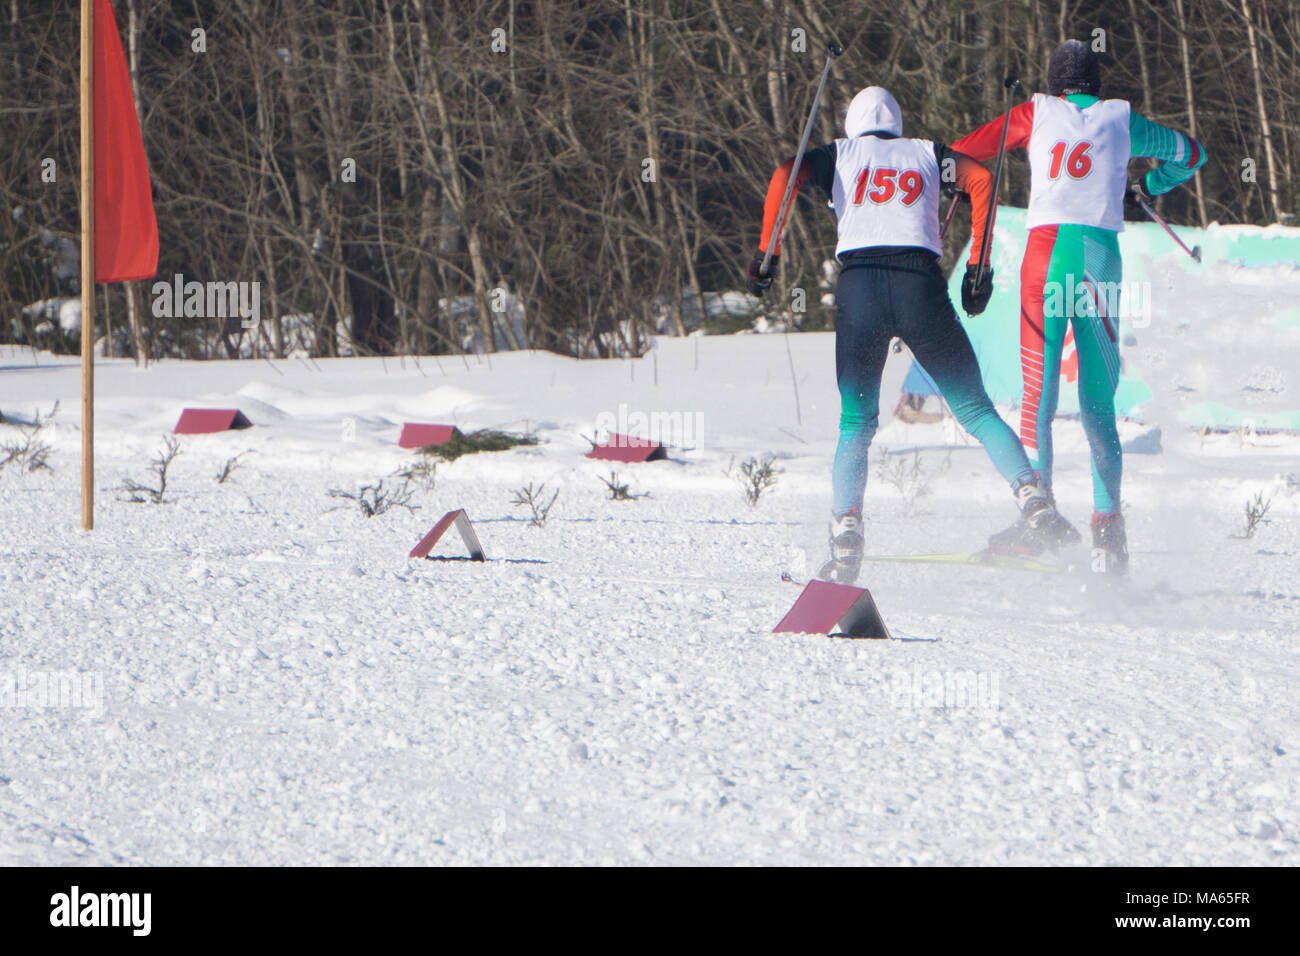 start group of skiers athletes sport of cross-country skiing - Stock Image